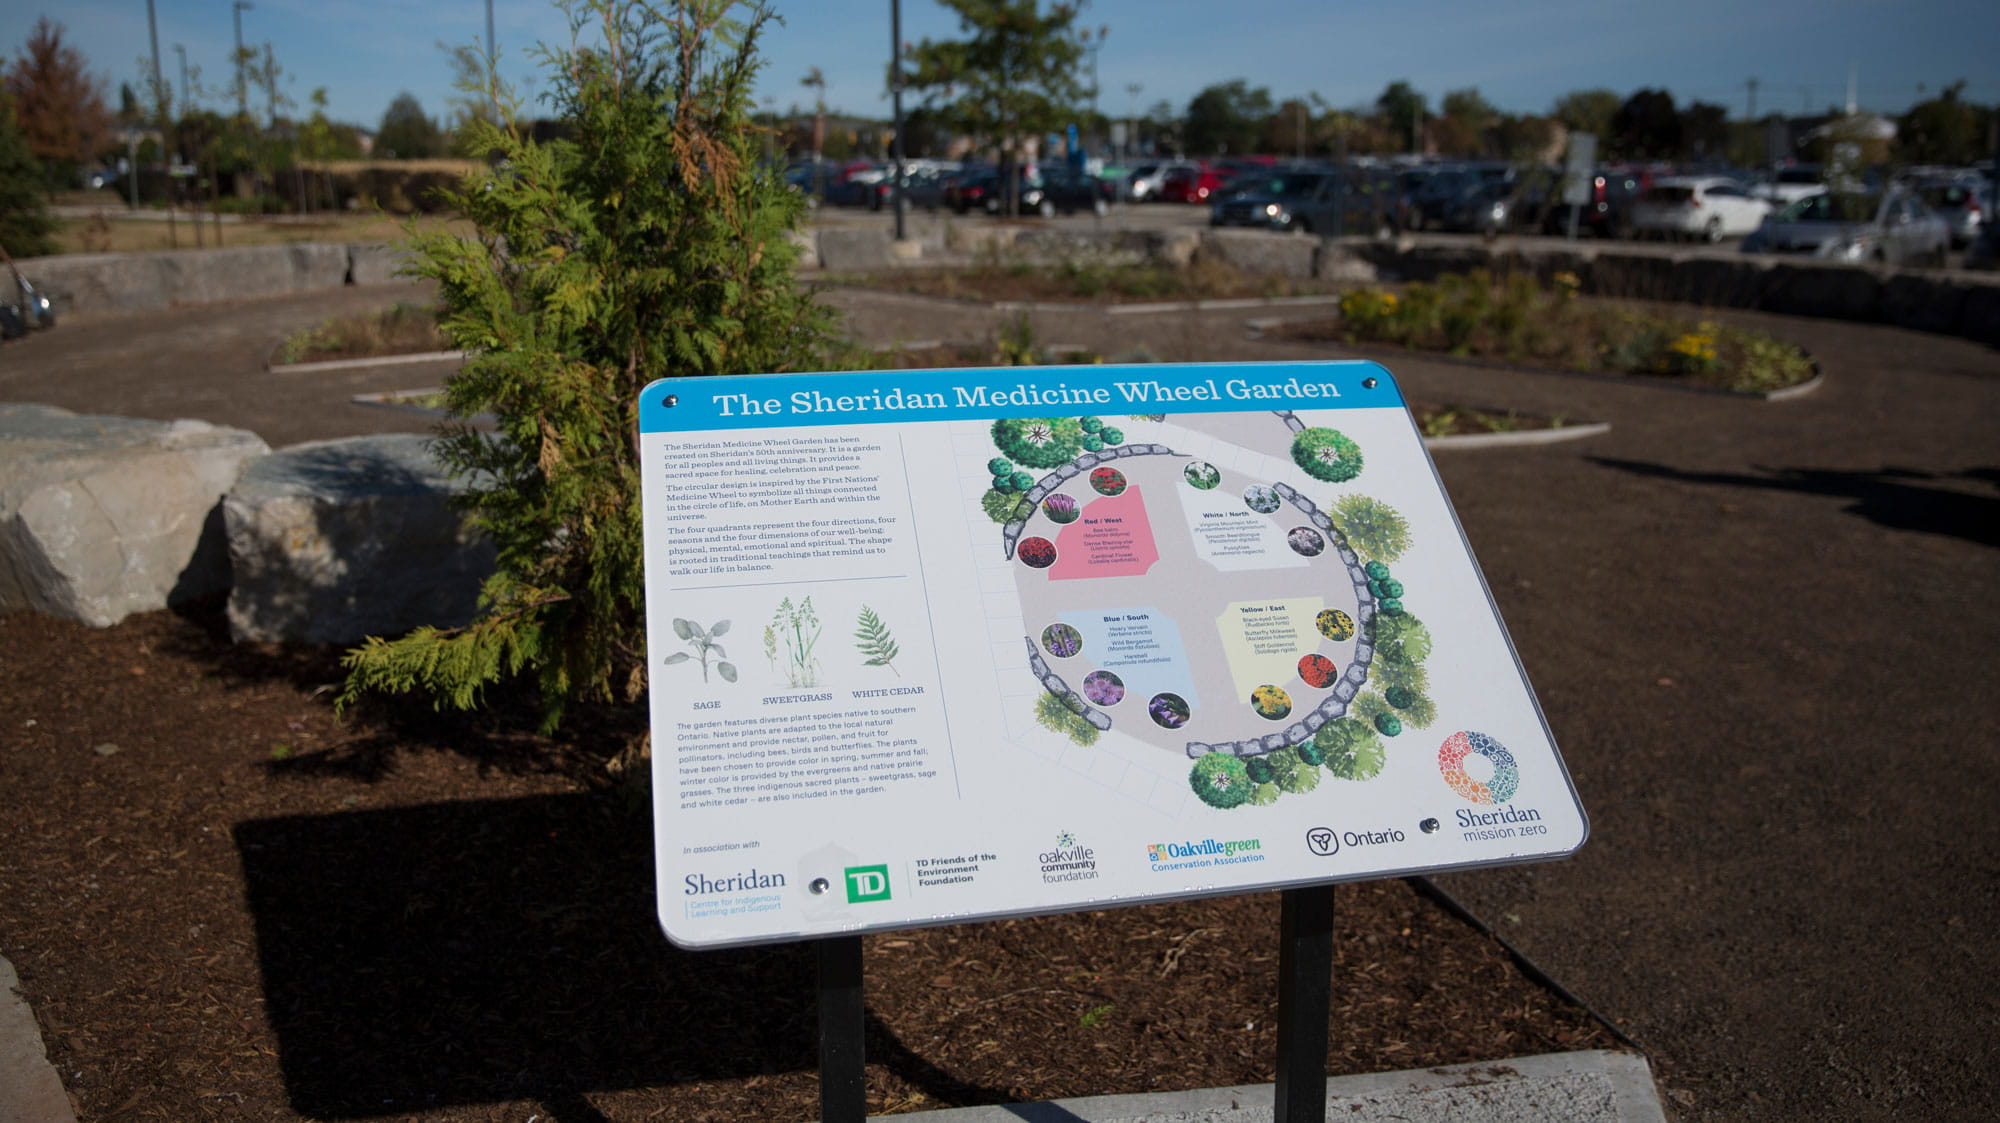 A sign in front of the Medicine Wheel Garden at Sheridan's Trafalgar Campus, with information about the garden